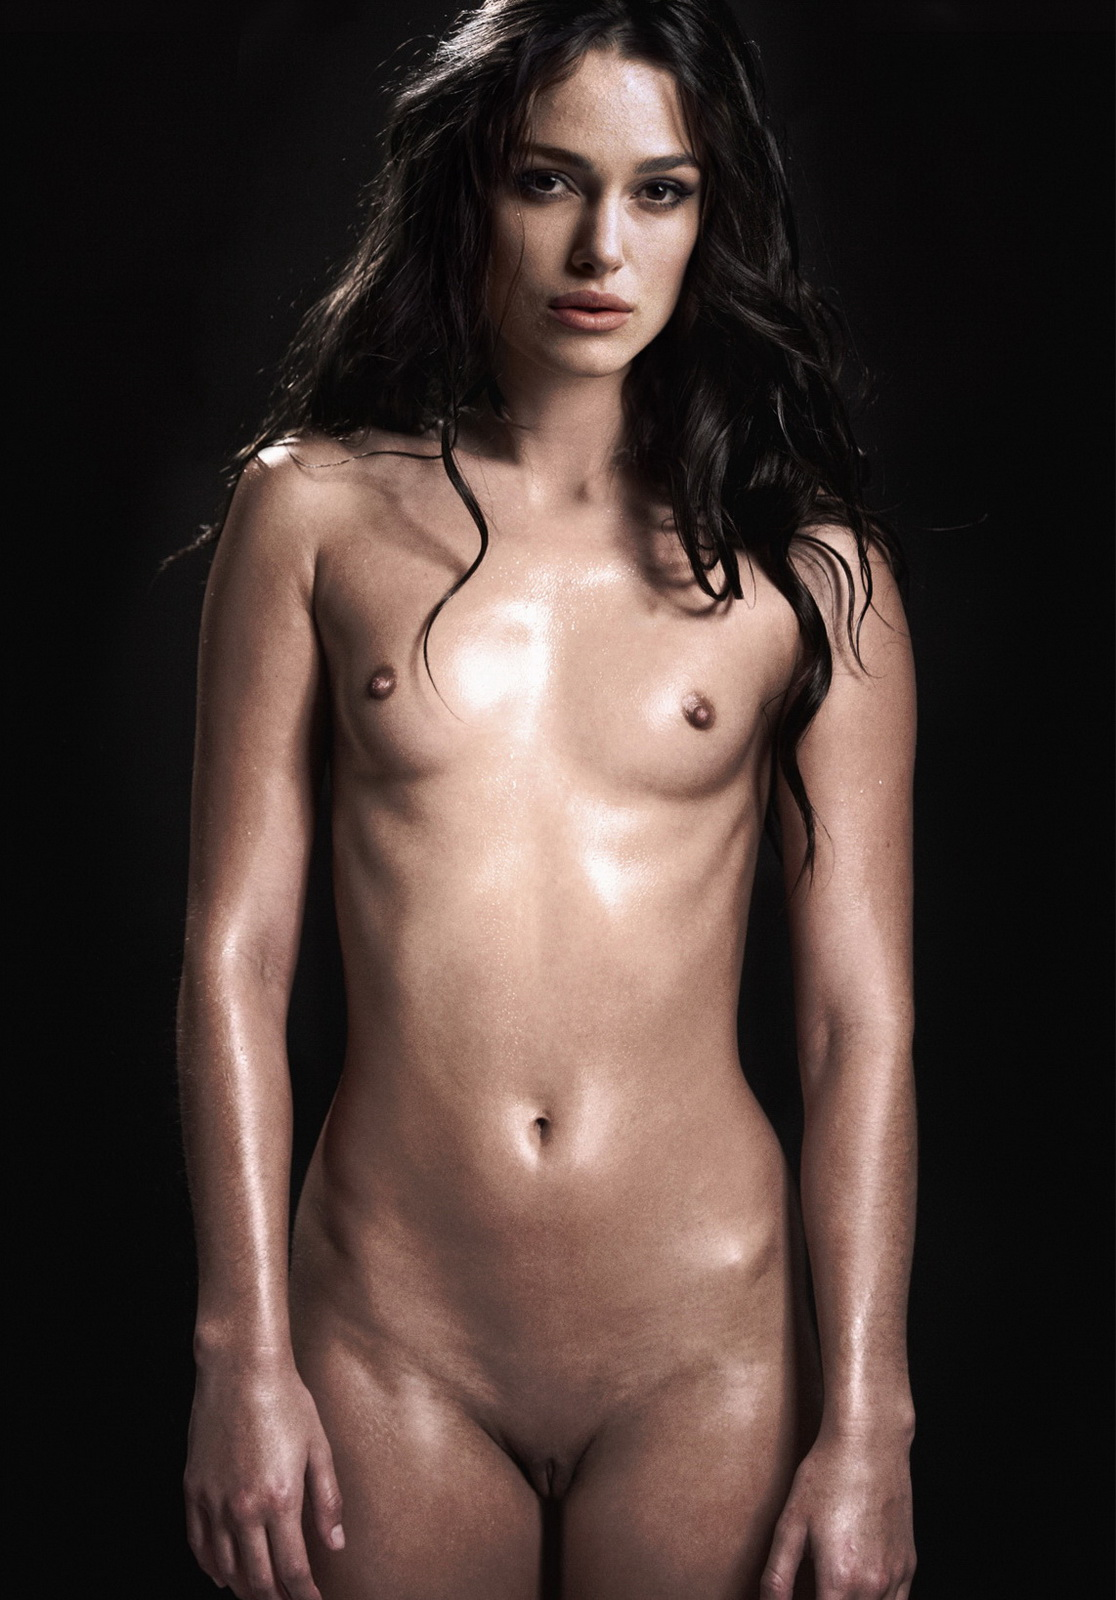 Keira knightley nude clip media man, what